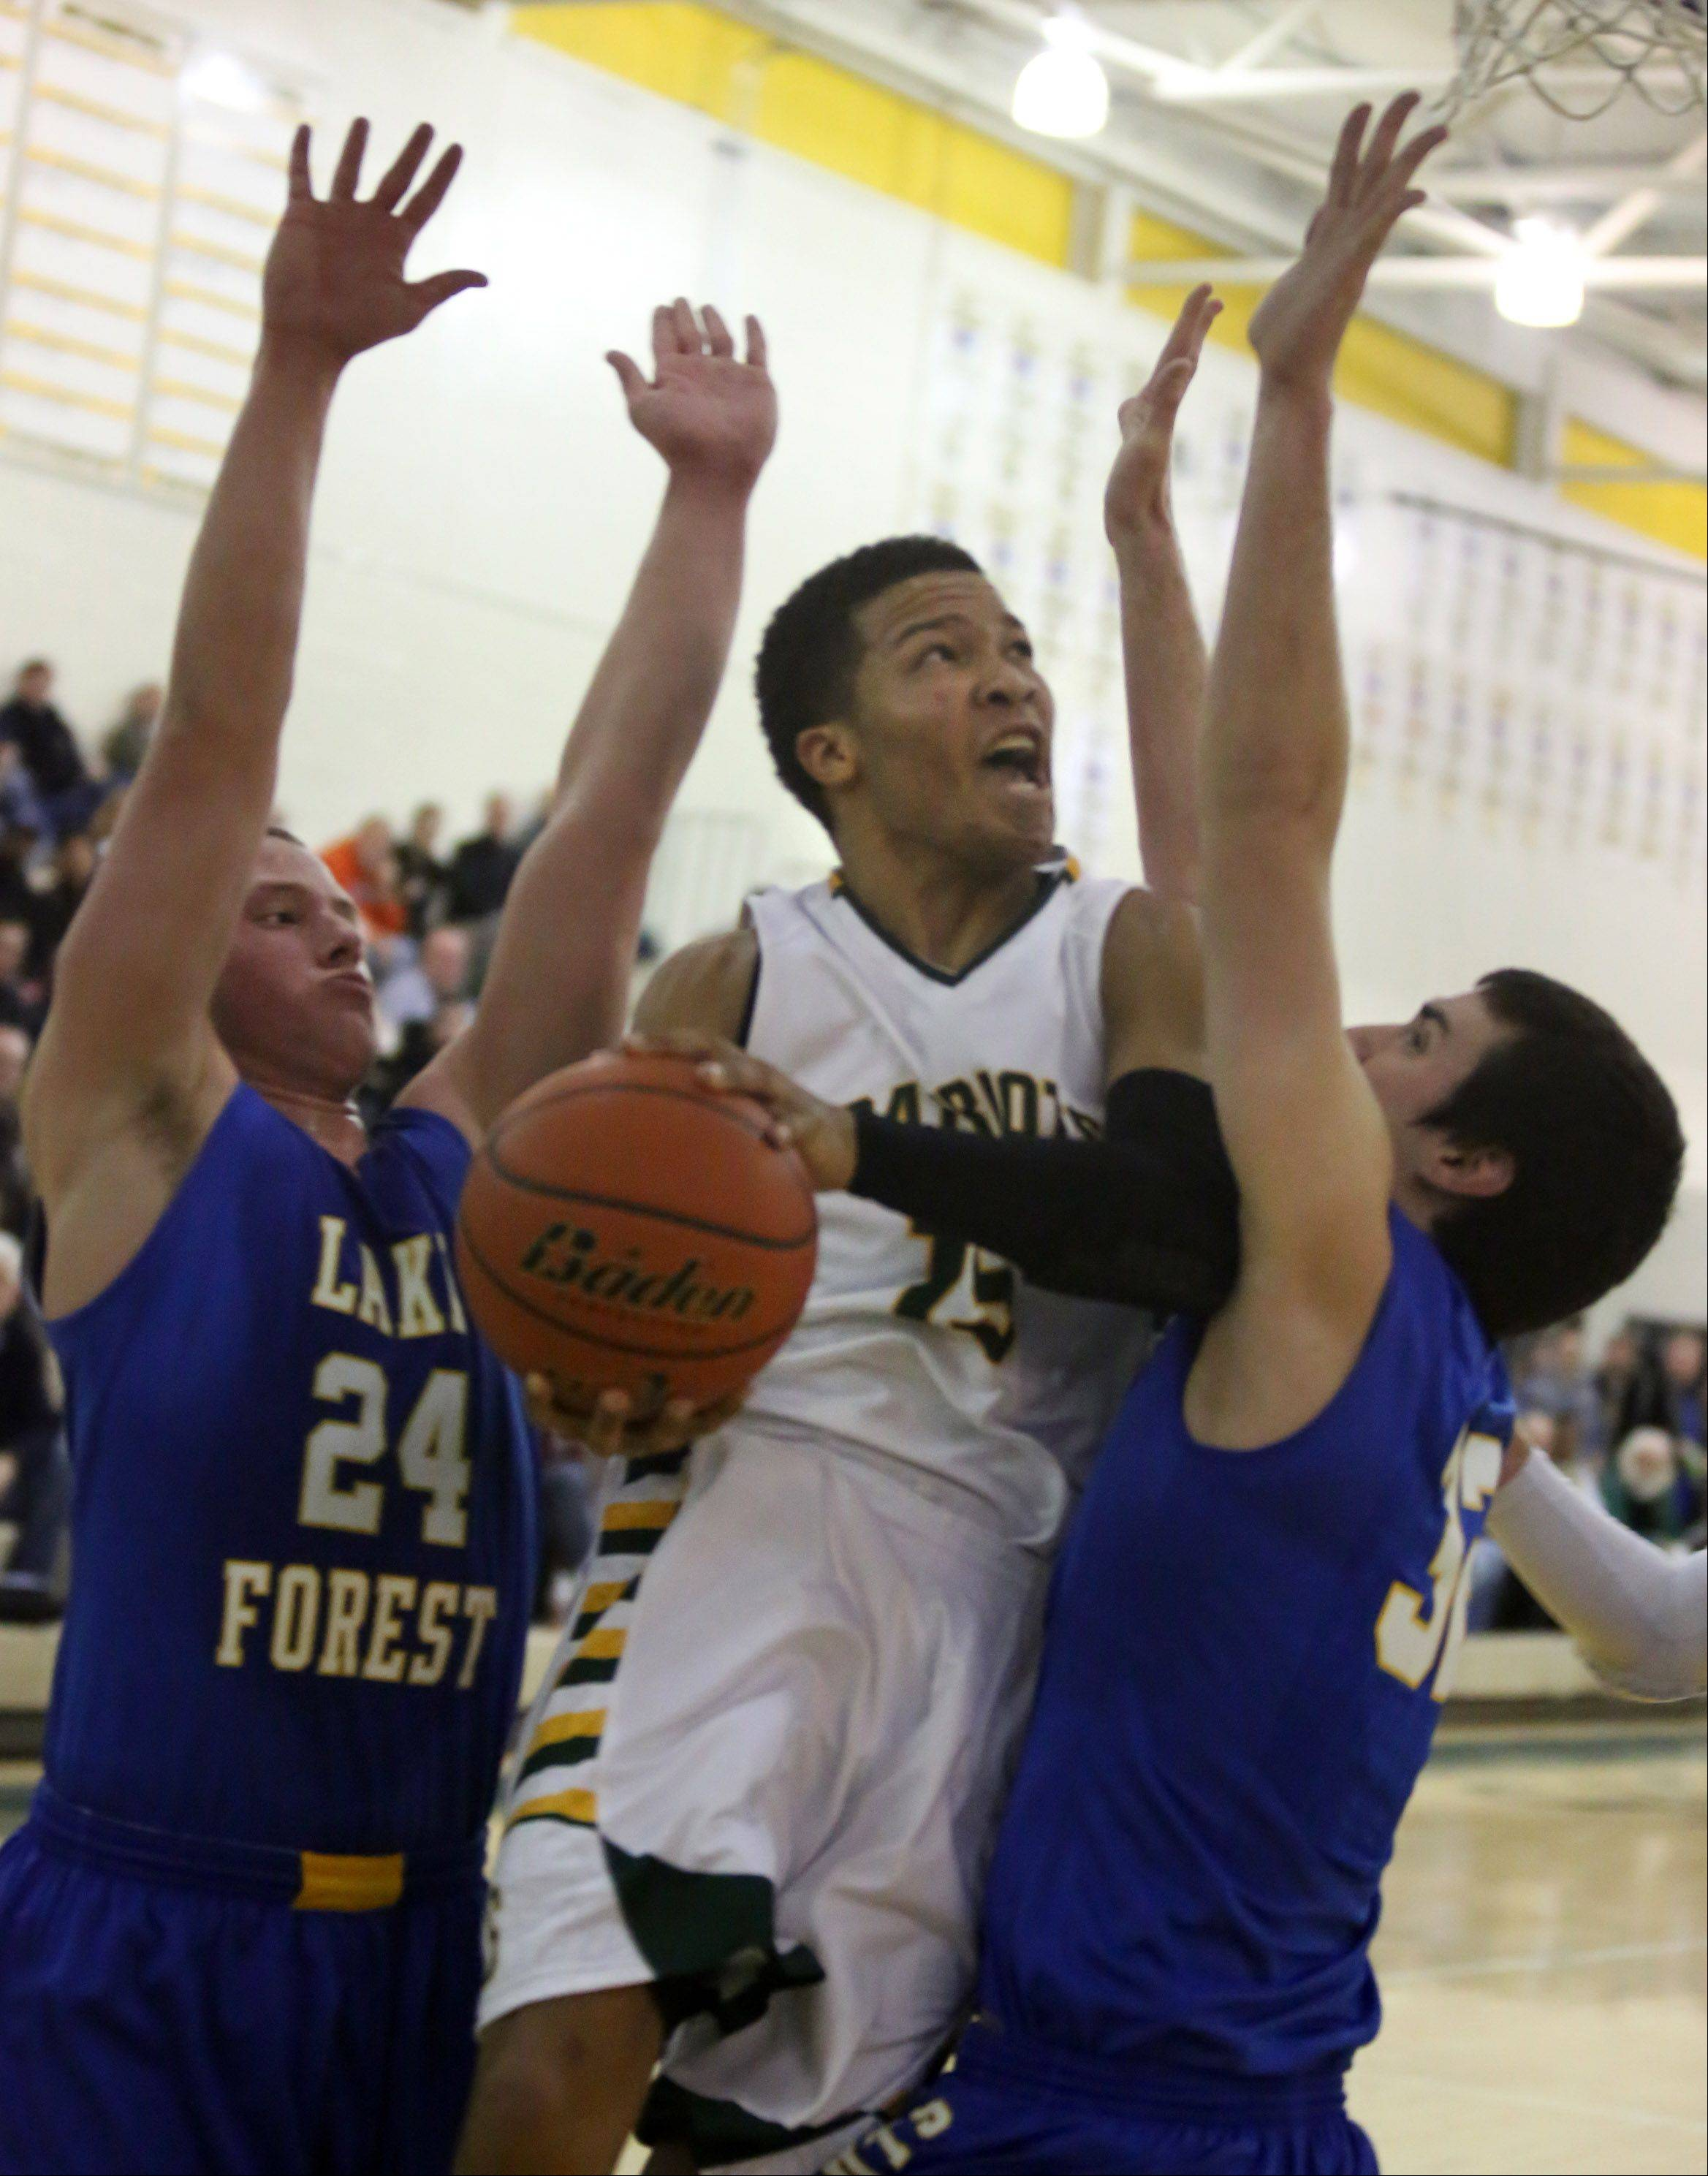 Stevenson forward Jalen Brunson finds himself sandwiched between Lake Forest defenders including Cal Miller, left, at Stevenson on Friday.